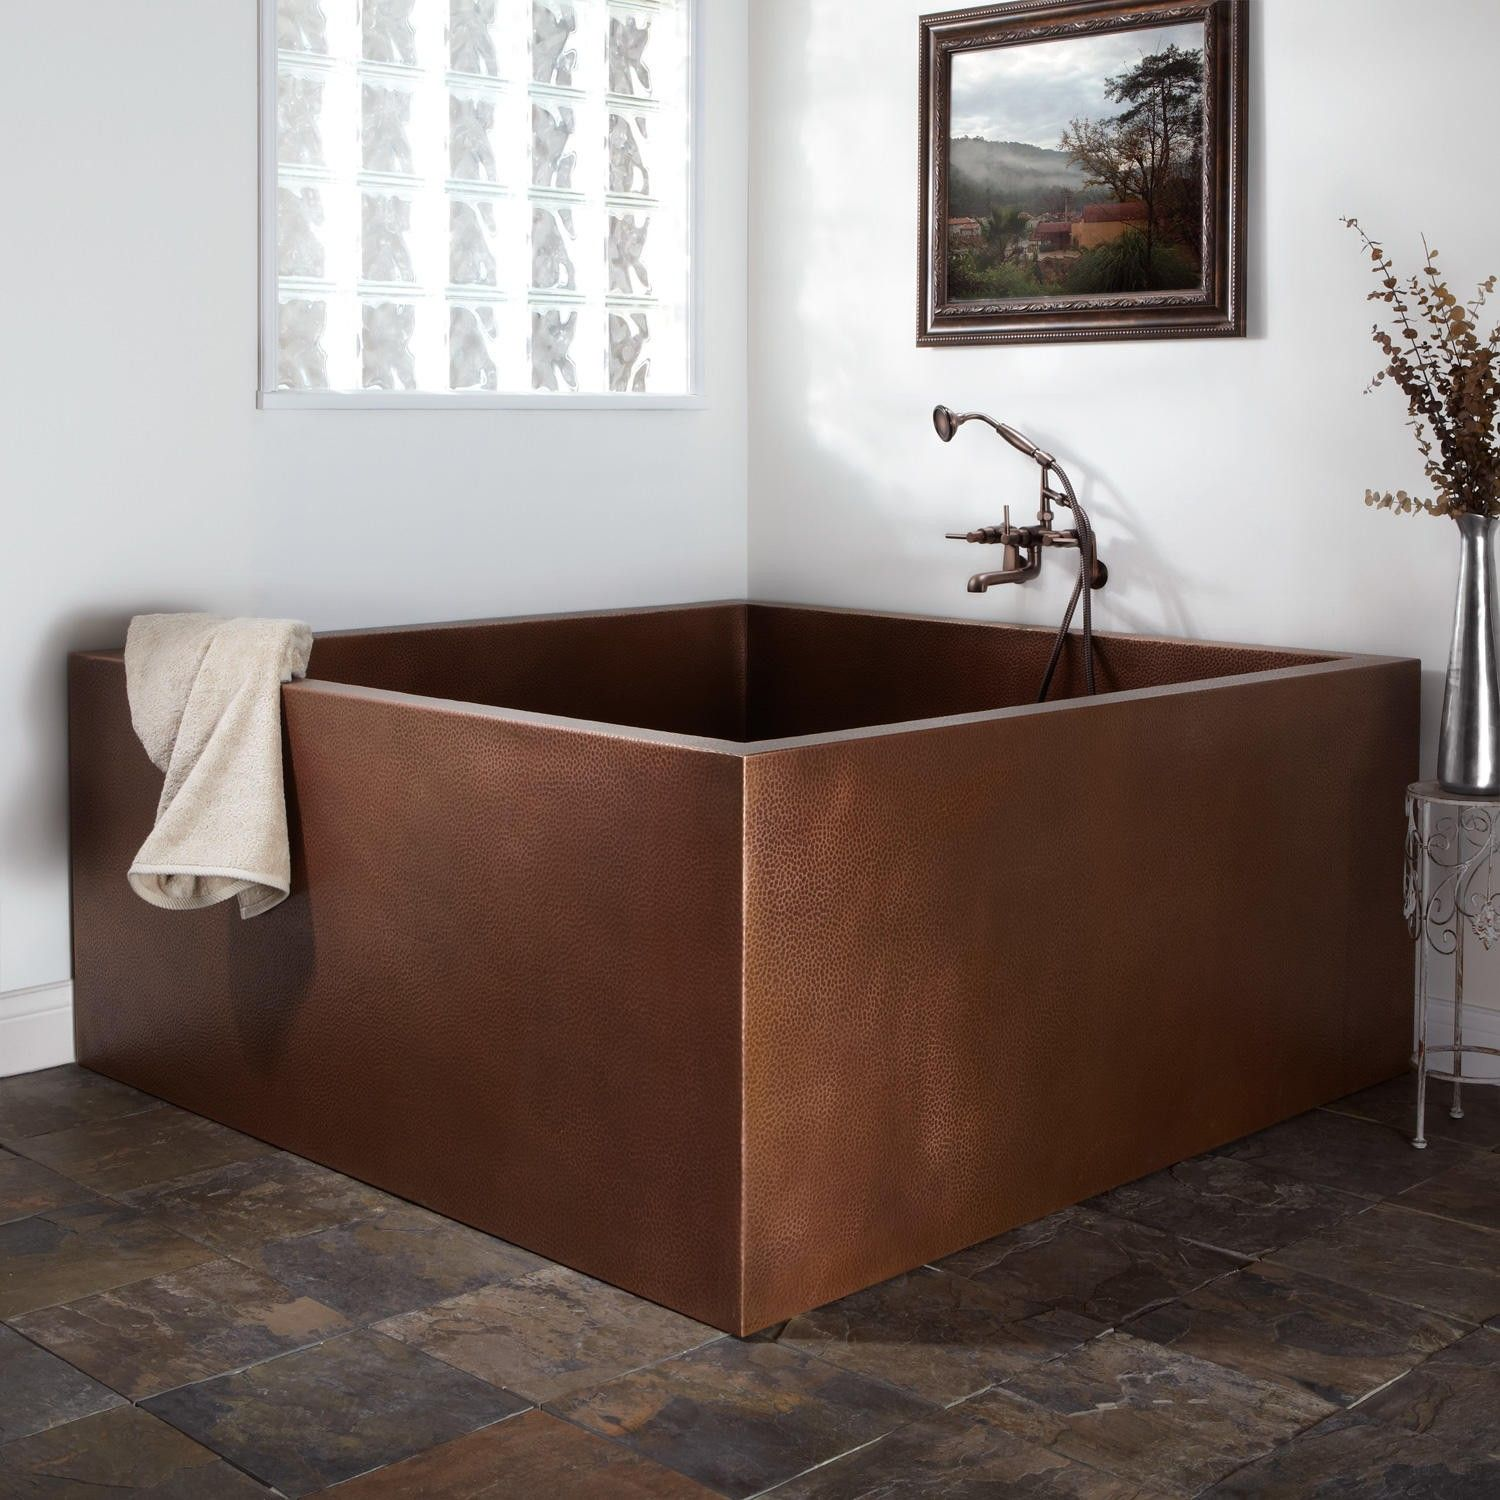 60 Elsinore Double Wall Square Hammered Copper Soaking Tub